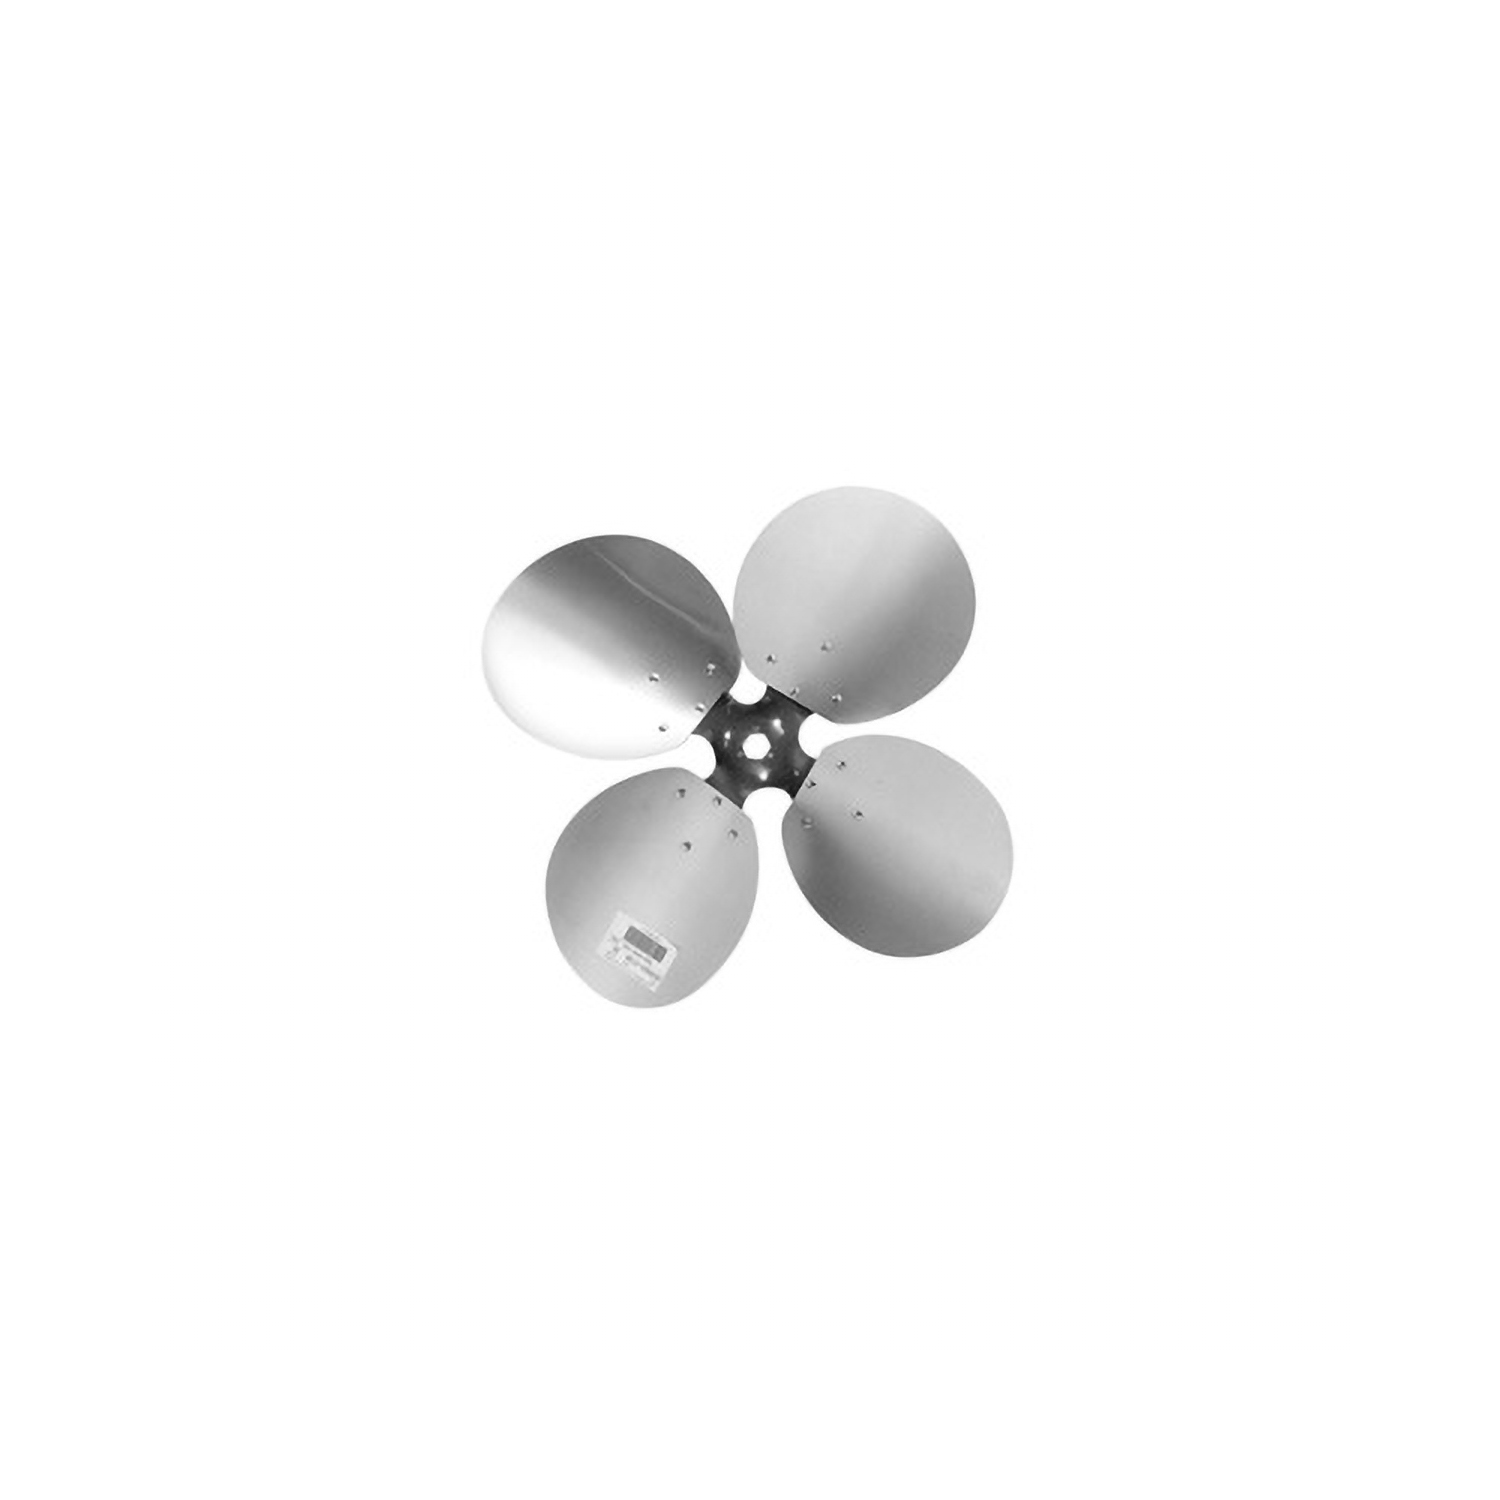 "4-Blade Free Air Propeller 24"" Diameter CW Rotation"